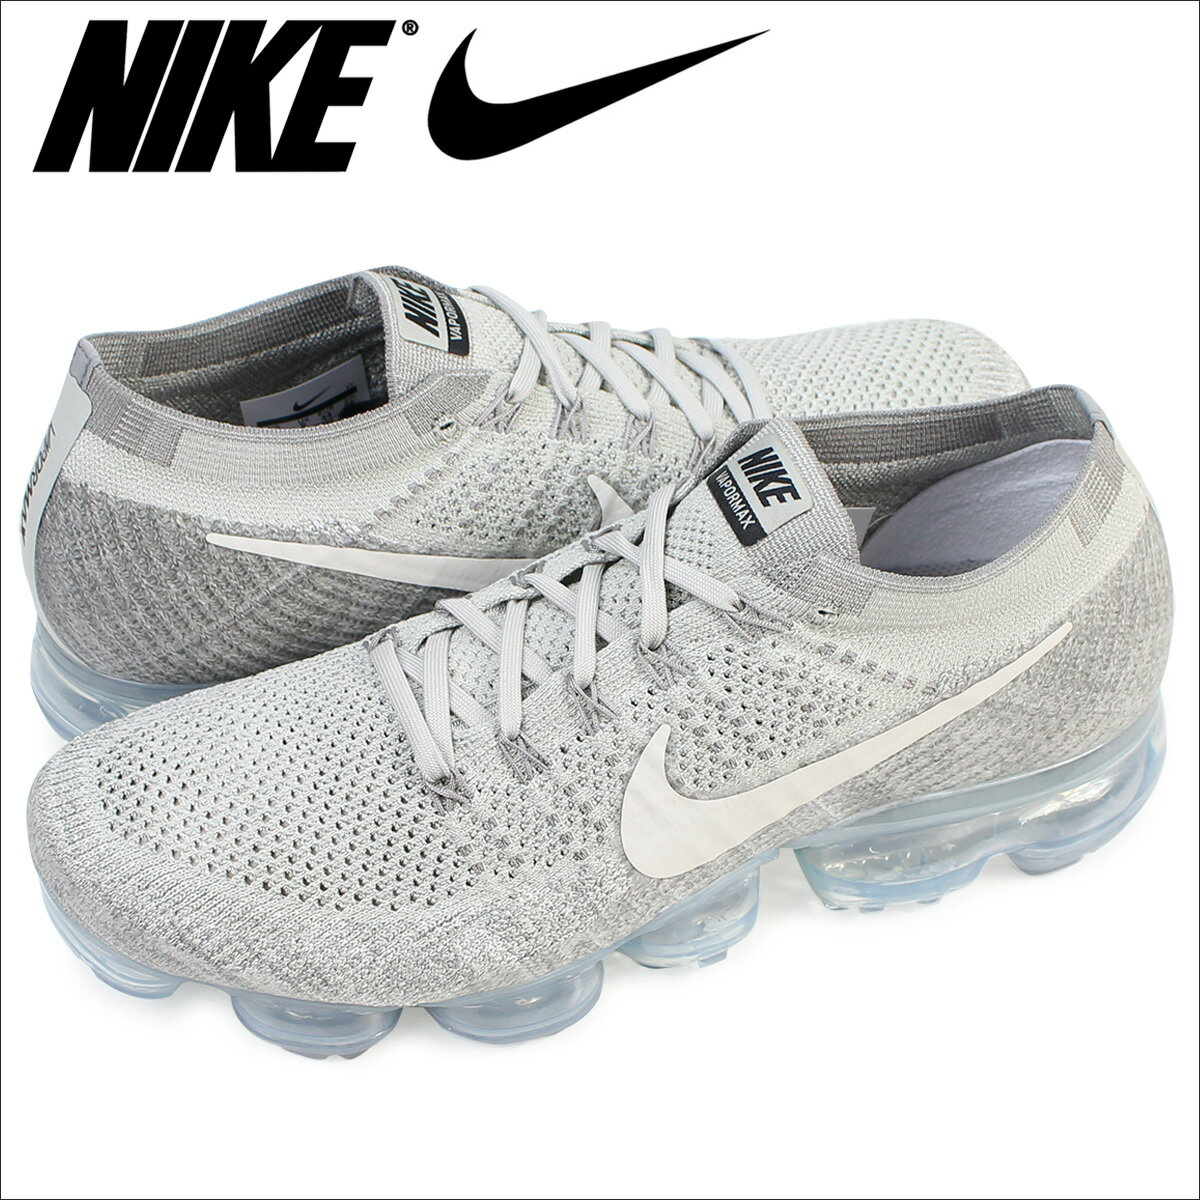 [SOLD OUT] ナイキ NIKE エア ヴェイパーマックス フライニット スニーカー  AIR VAPORMAX FLYKNIT  メンズ 849558-005 靴 グレー [6/21 新入荷]:Whats up Sports